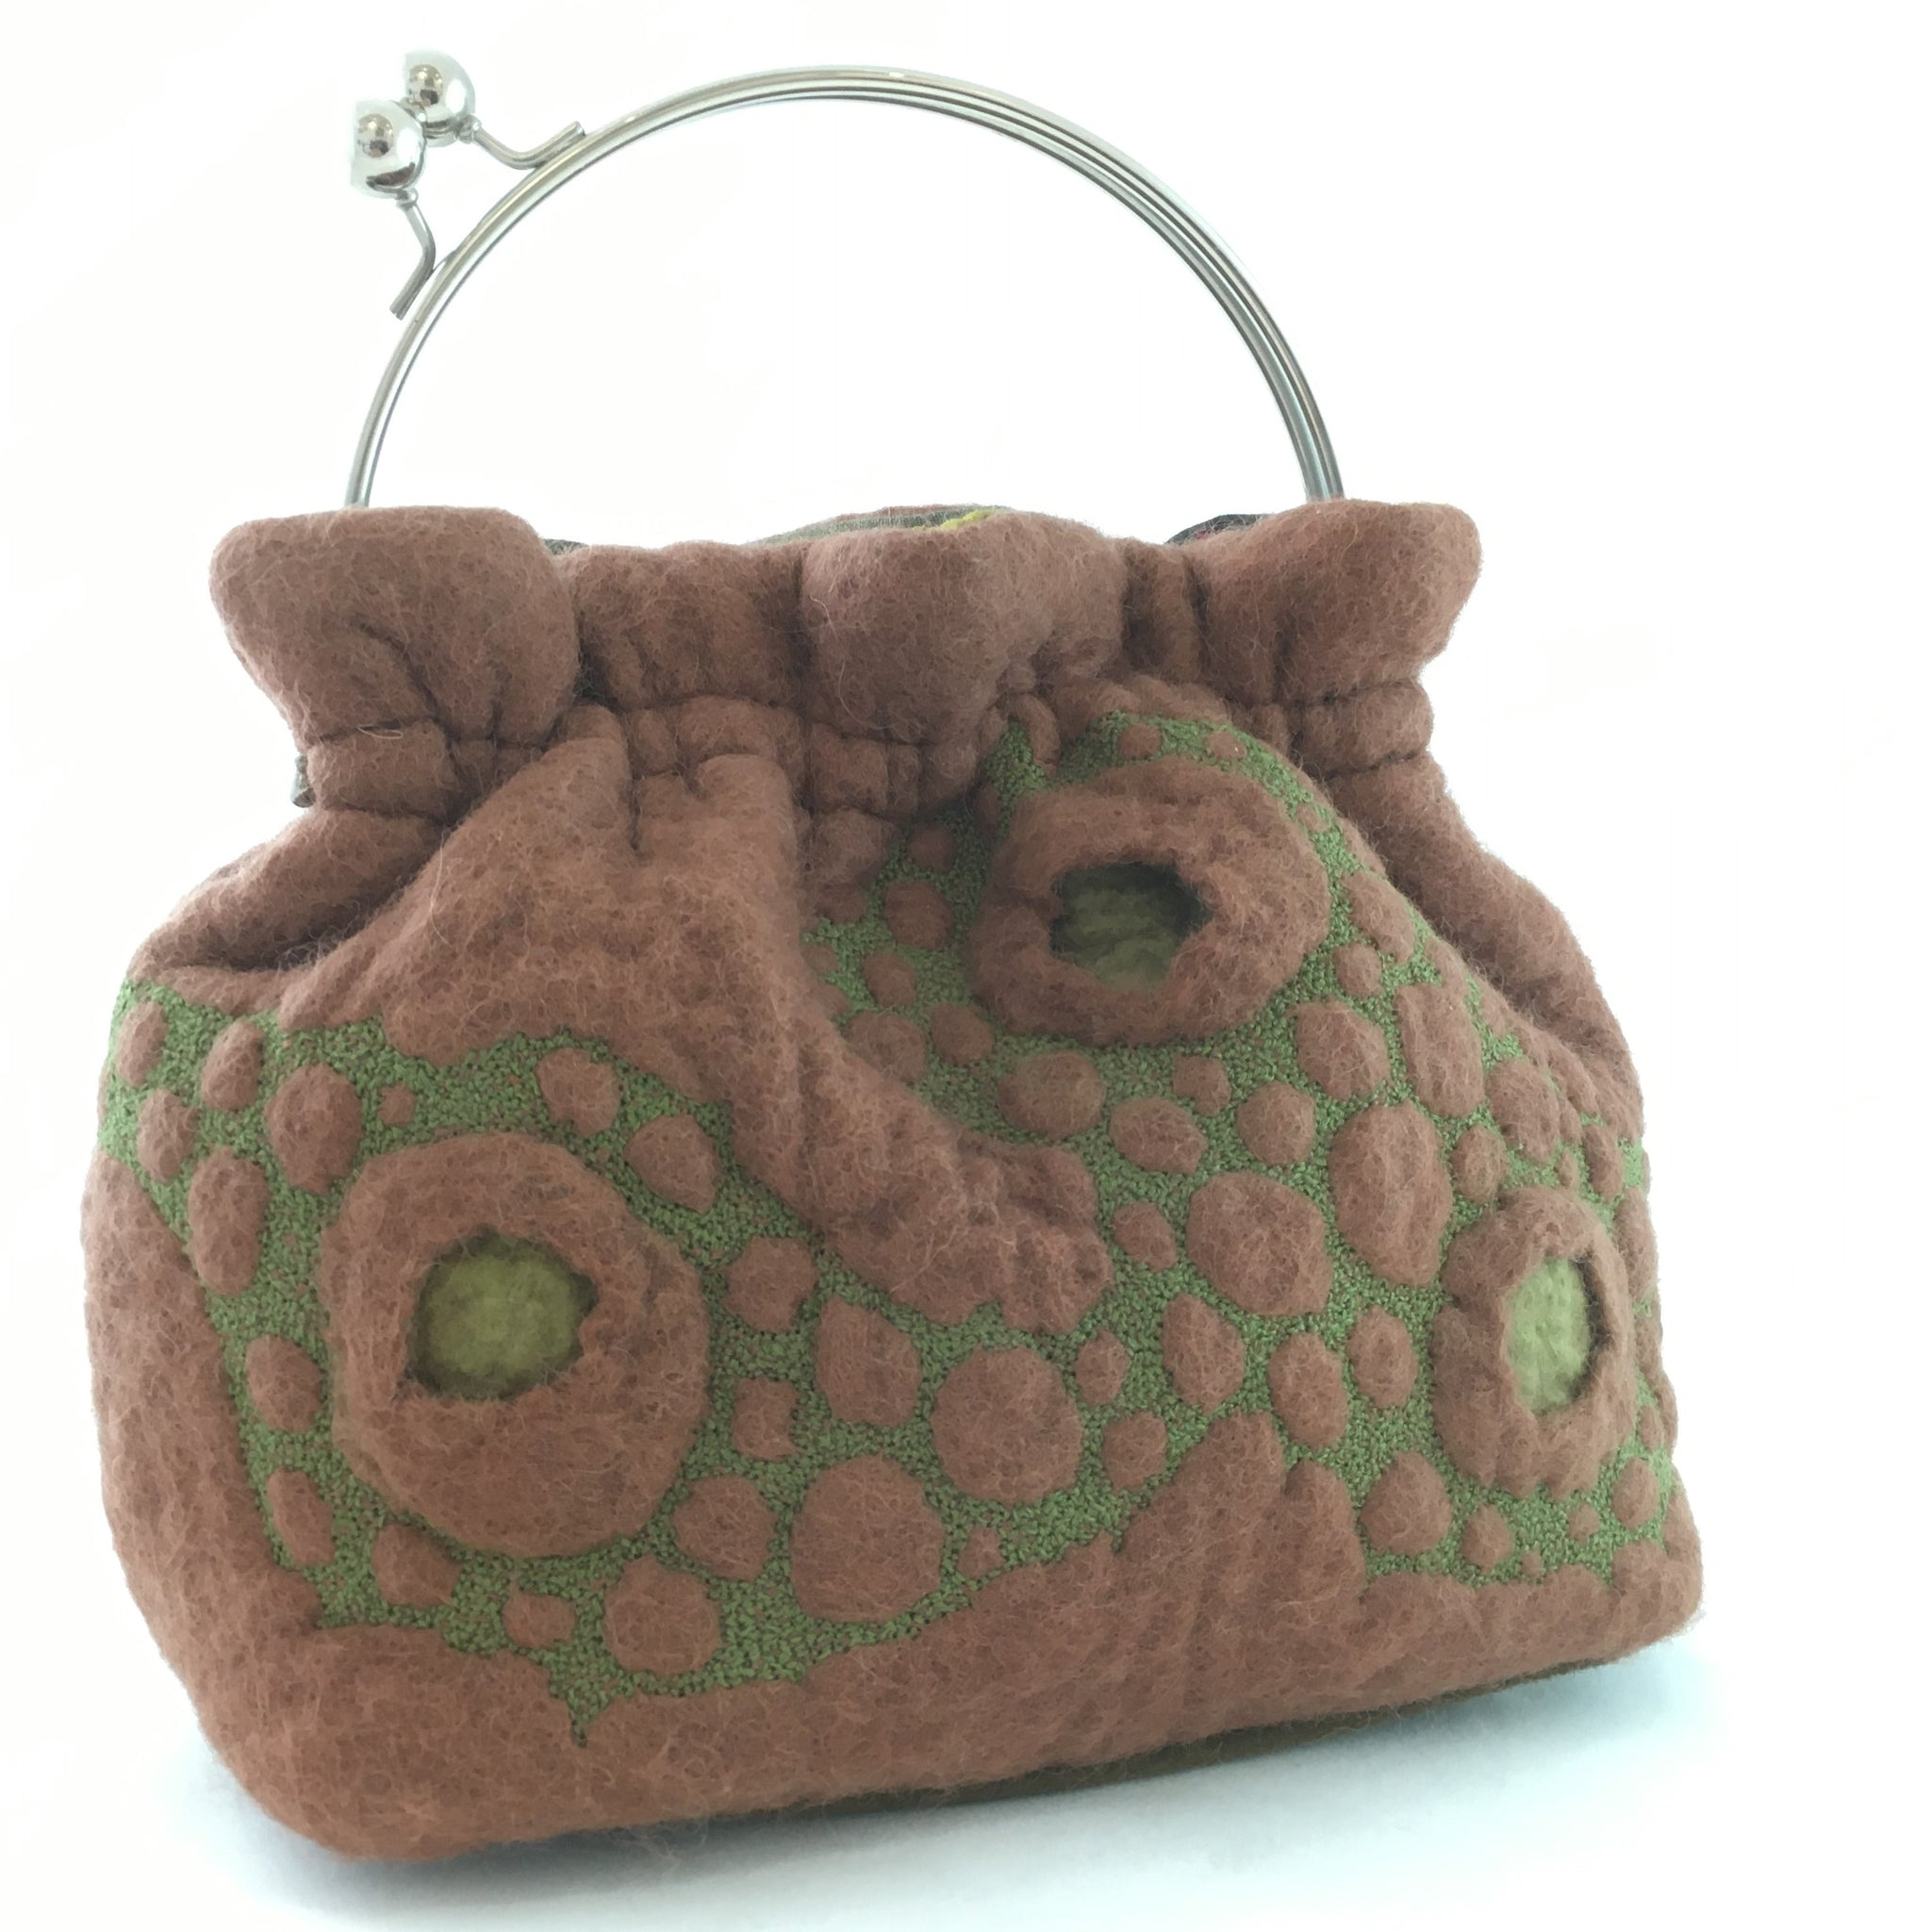 Puff bag by Helen Macritchie